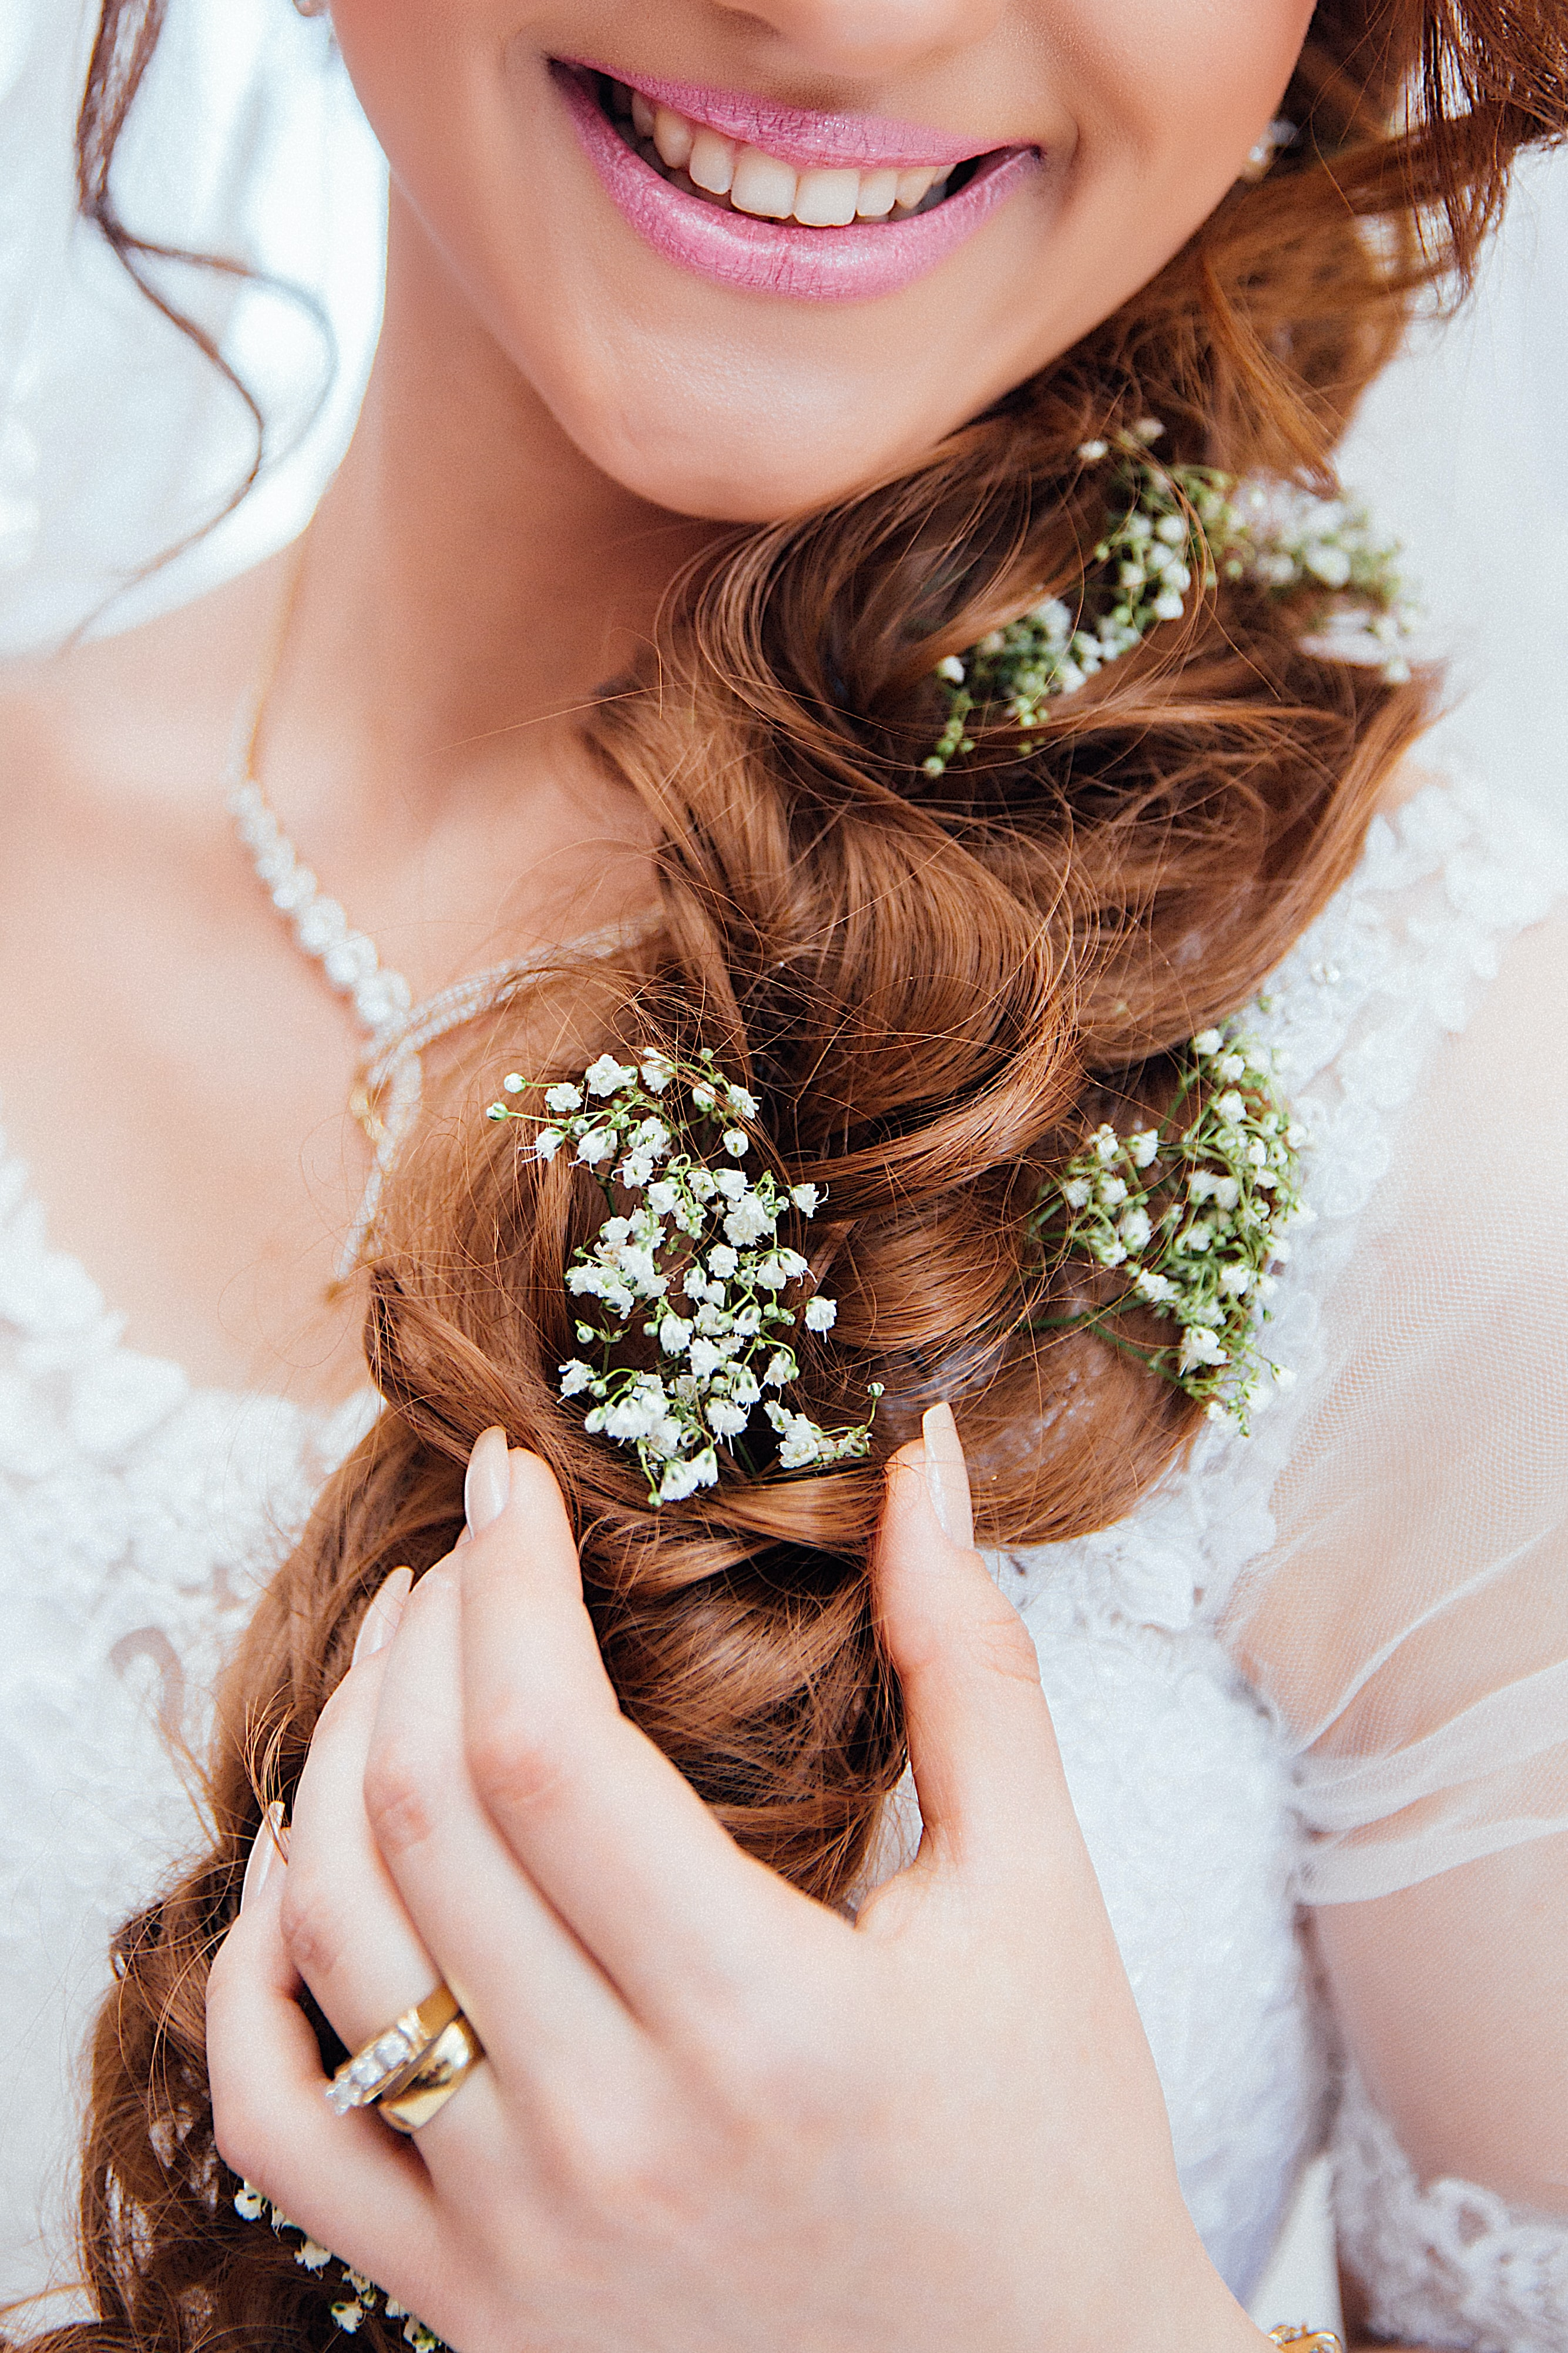 woman holding her hair with flower